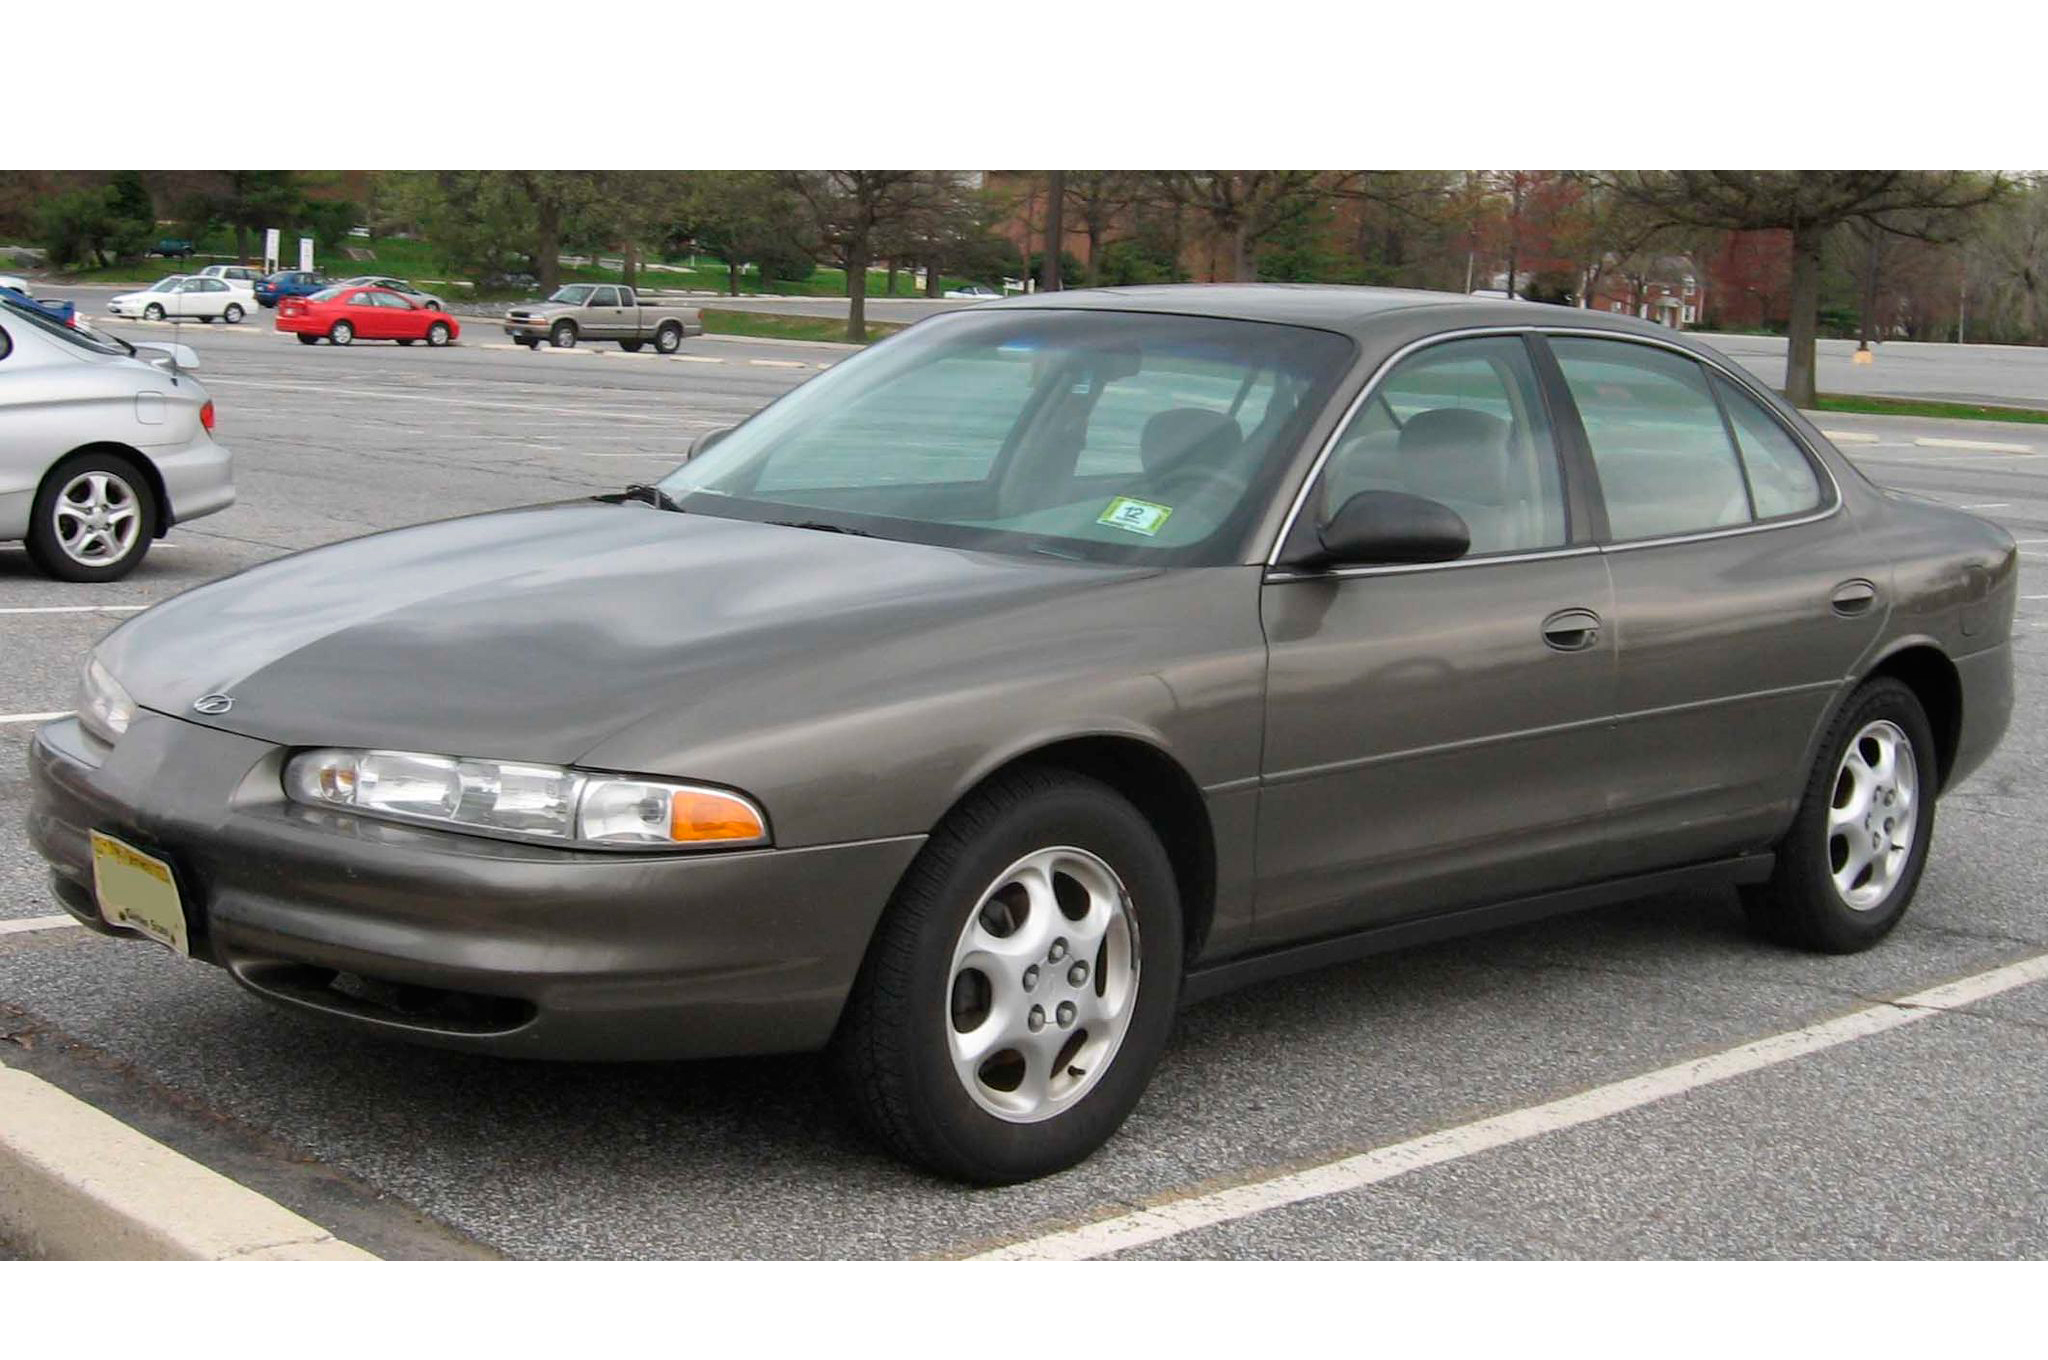 The Oldsmobile Intrigue production car is pictured here